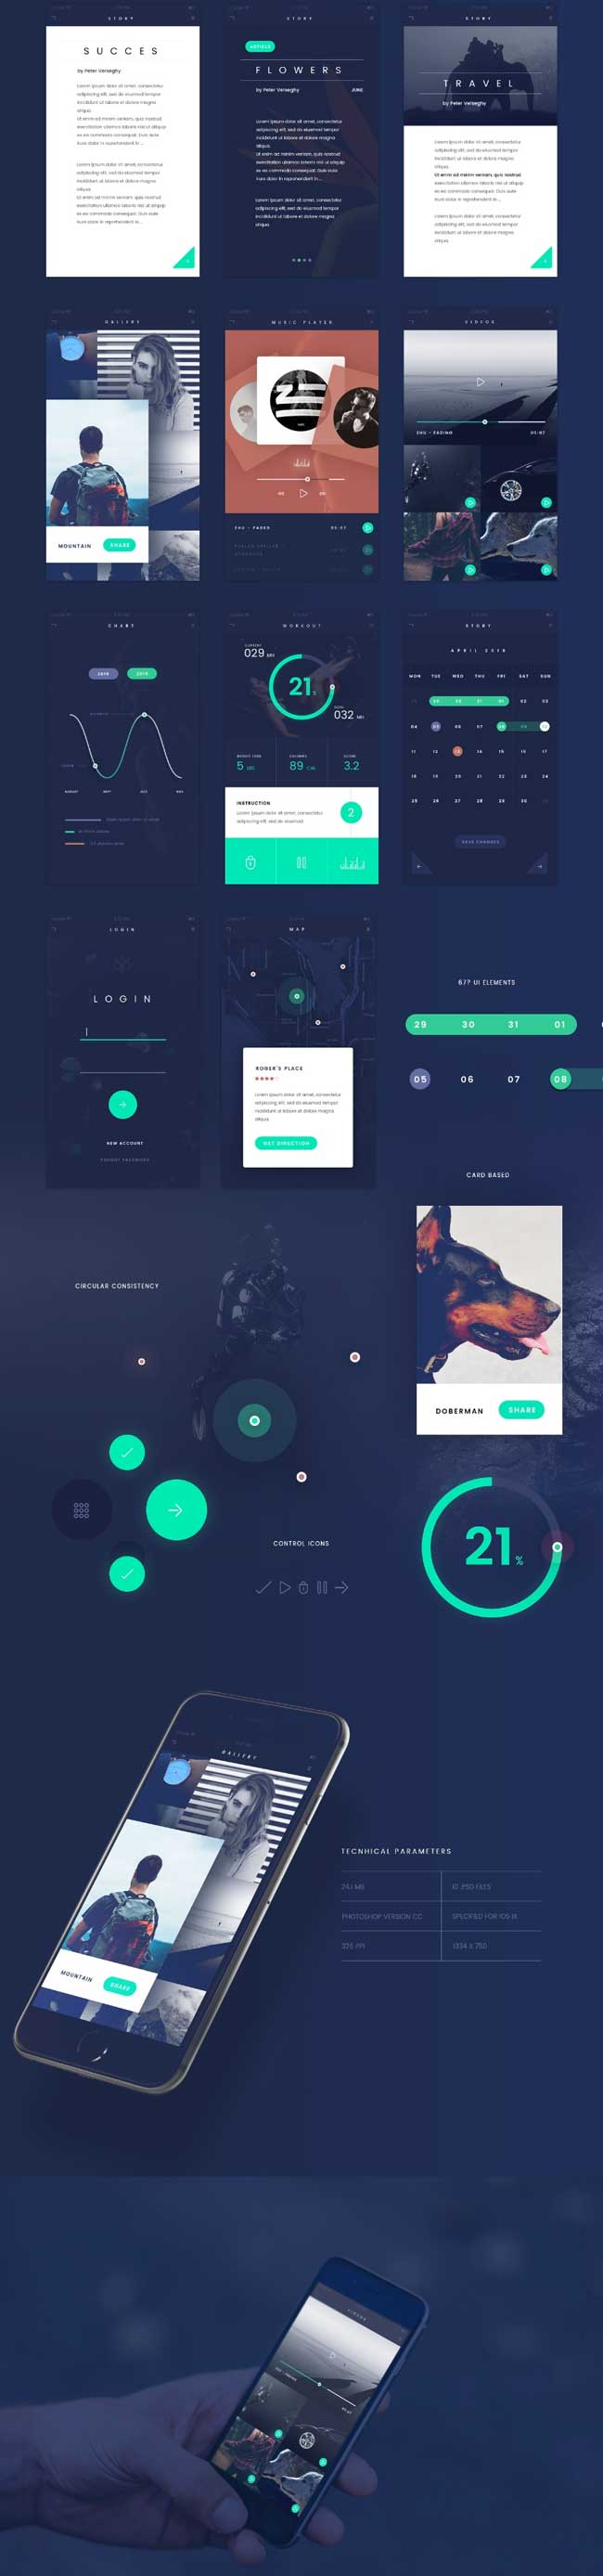 fade-free-flat-app-ui-kit-psd-preview